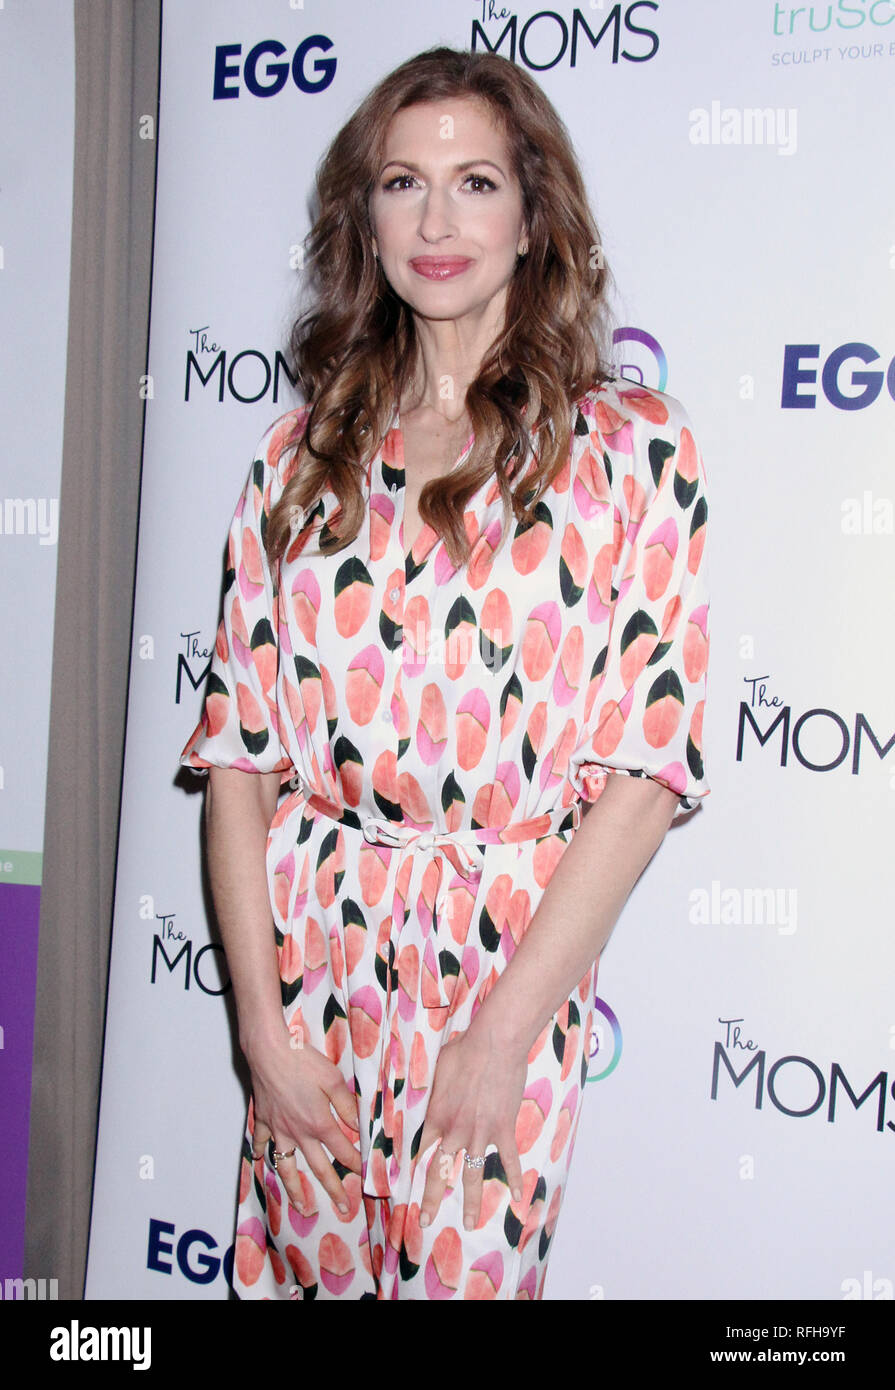 New York, USA. 25th January 2019.  Alysia Reiner at The Moms Mamarazzi screening of Egg in New York City on January 25, 2019. Credit: RW/Mediapunch Credit: MediaPunch Inc/Alamy Live News Stock Photo